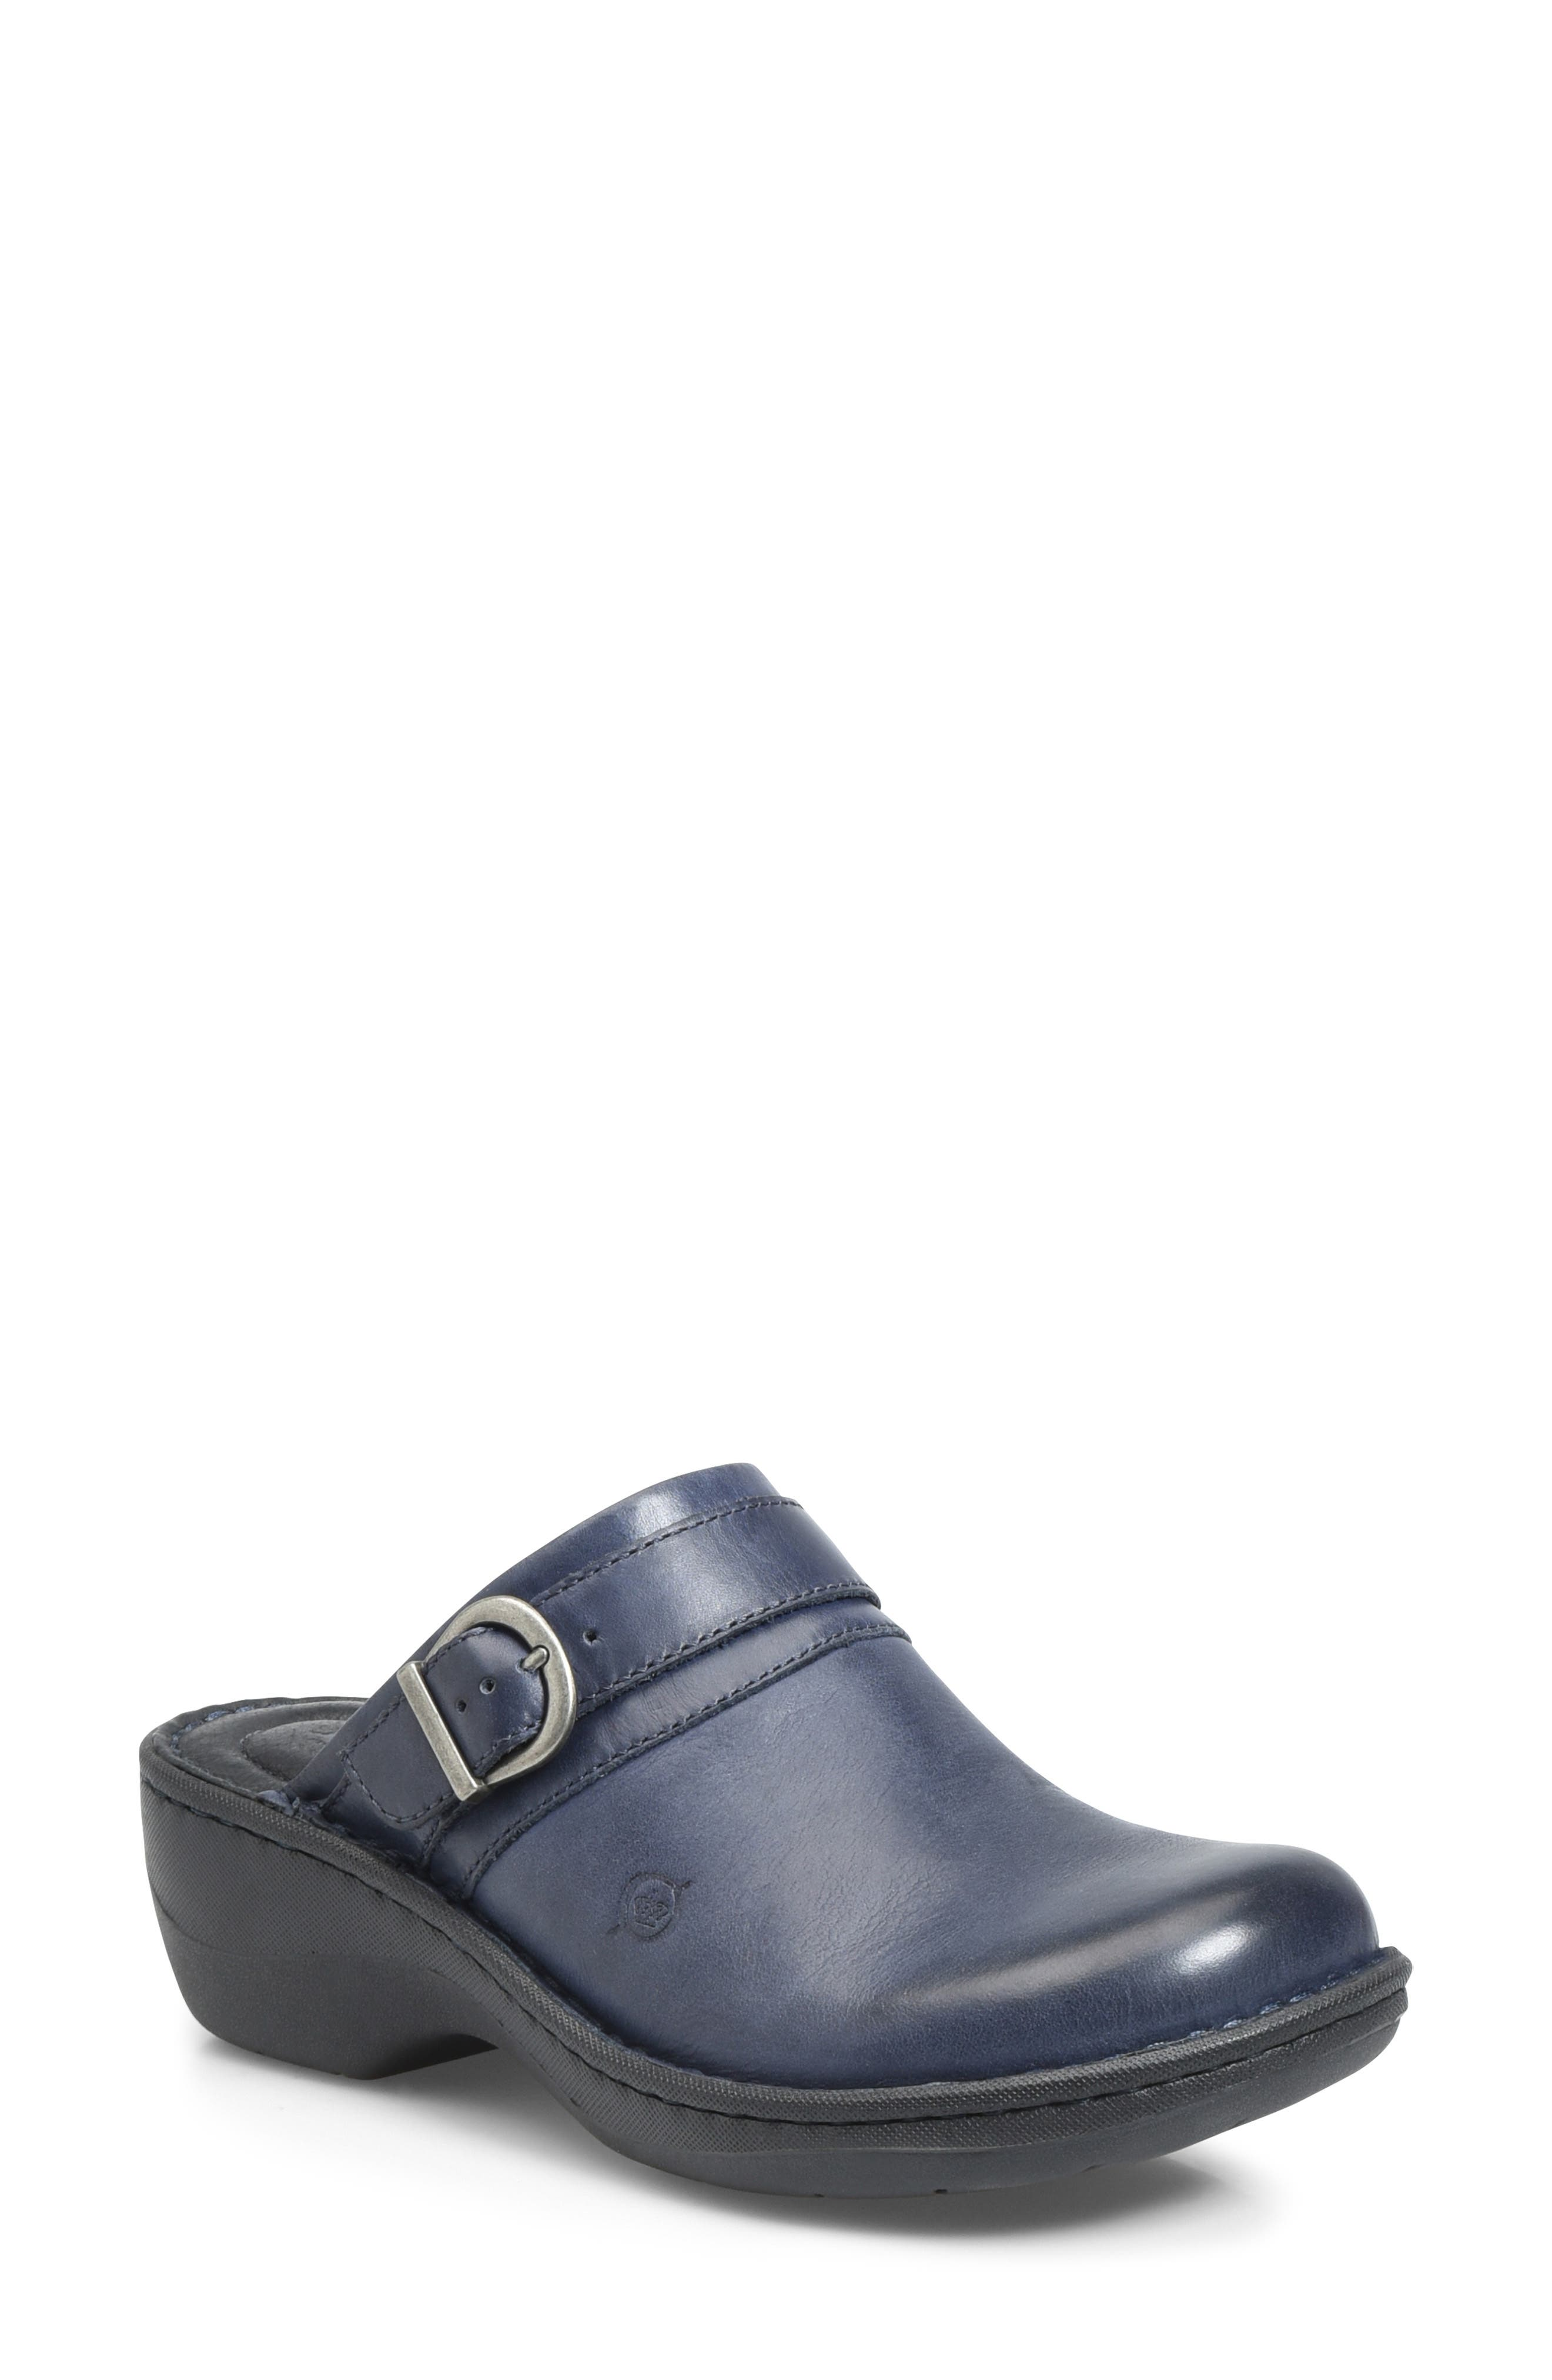 Avoca Clog,                         Main,                         color, NAVY LEATHER